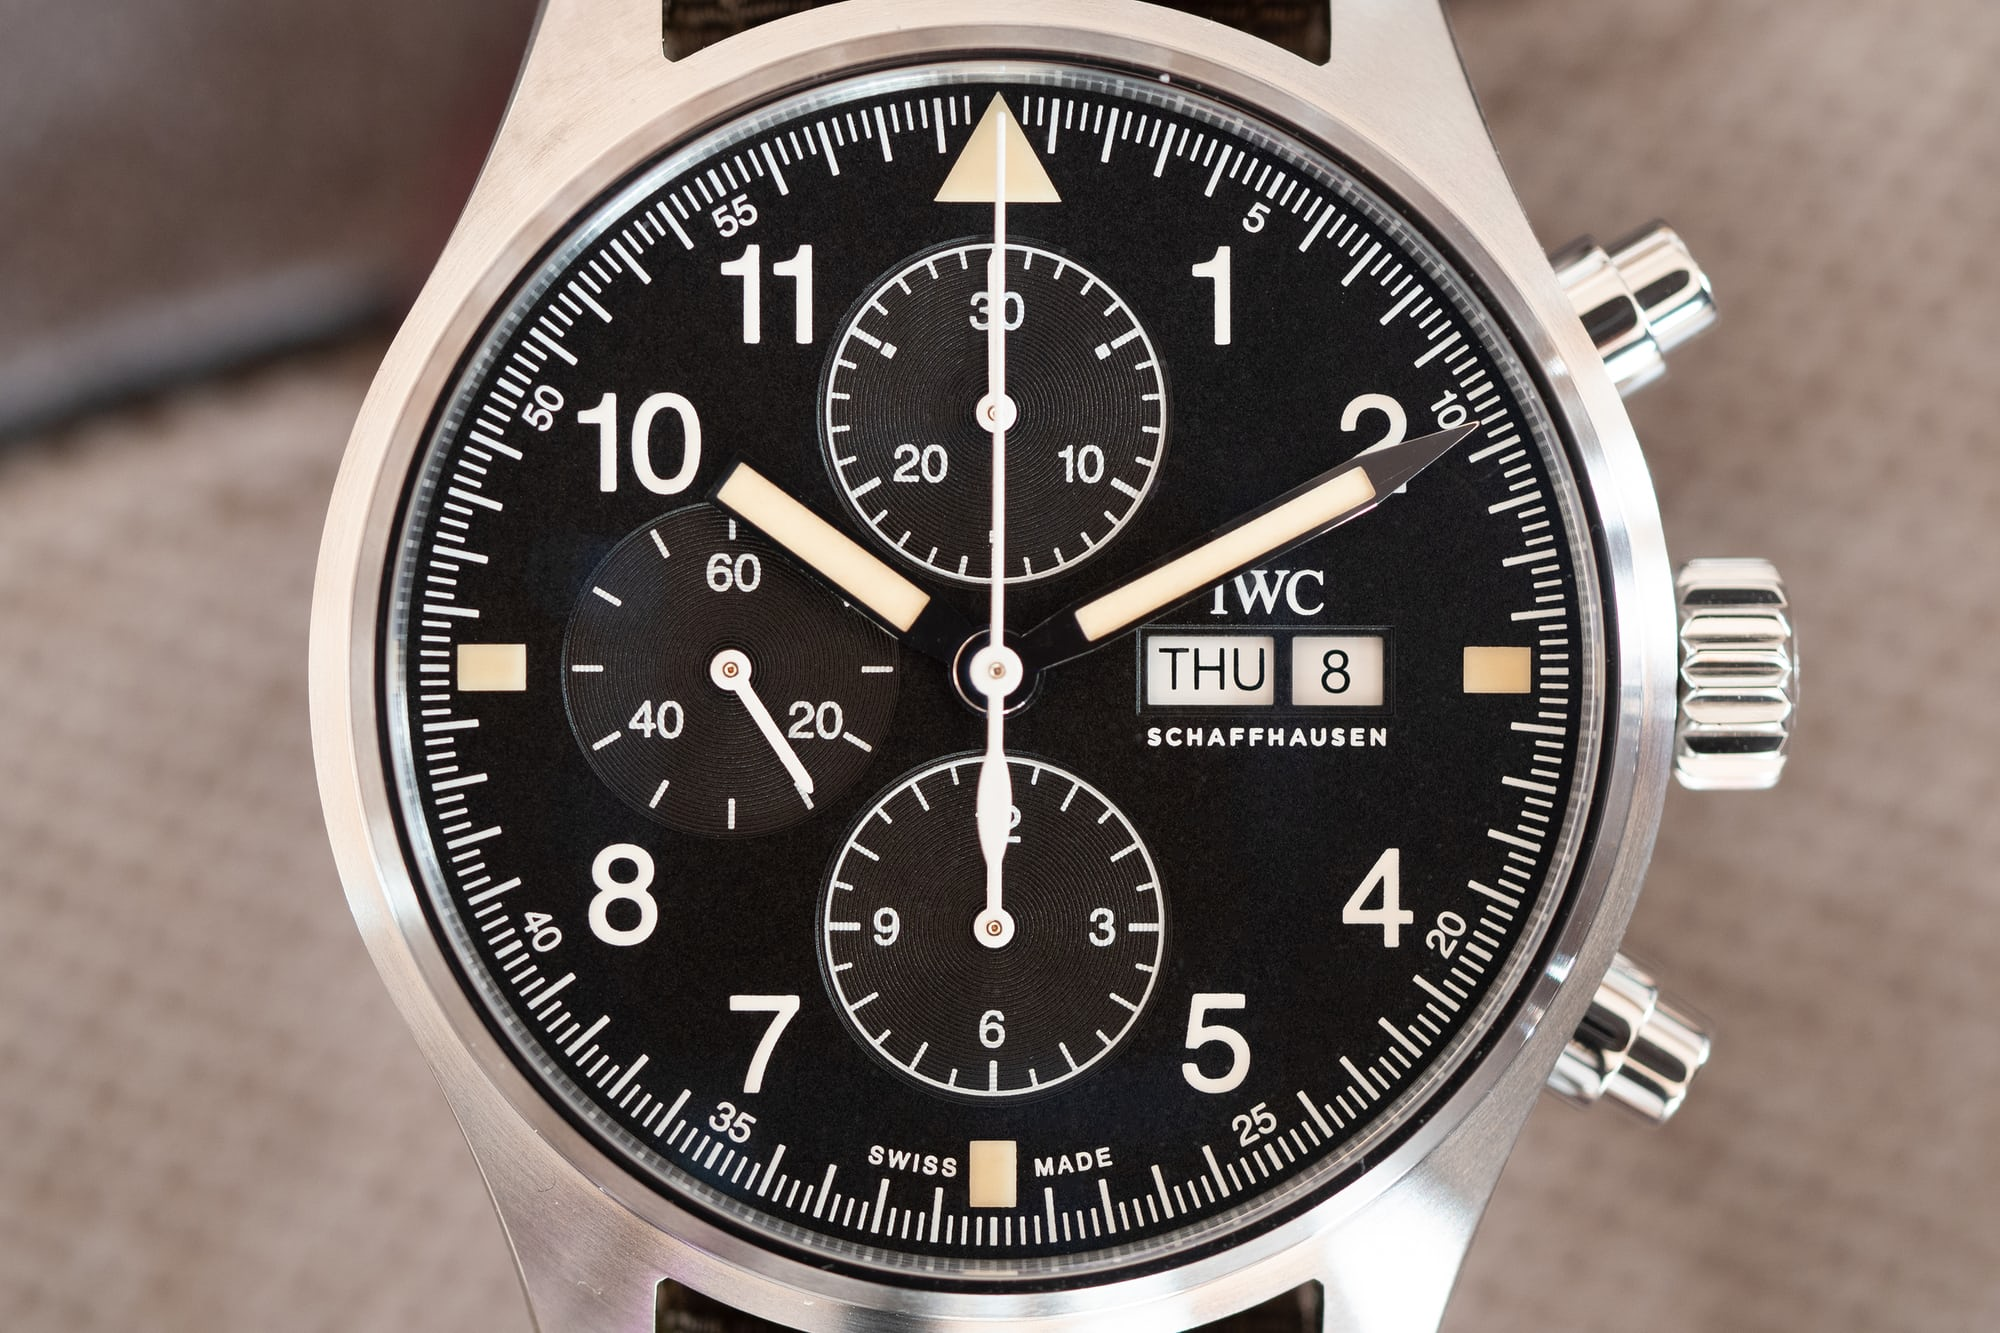 IWC Pilot's Watch Chronograph Reference IW377724 dial hands-on: the iwc pilot's watch chronograph ref. iw377724 Hands-On: The IWC Pilot's Watch Chronograph Ref. IW377724 P4250221